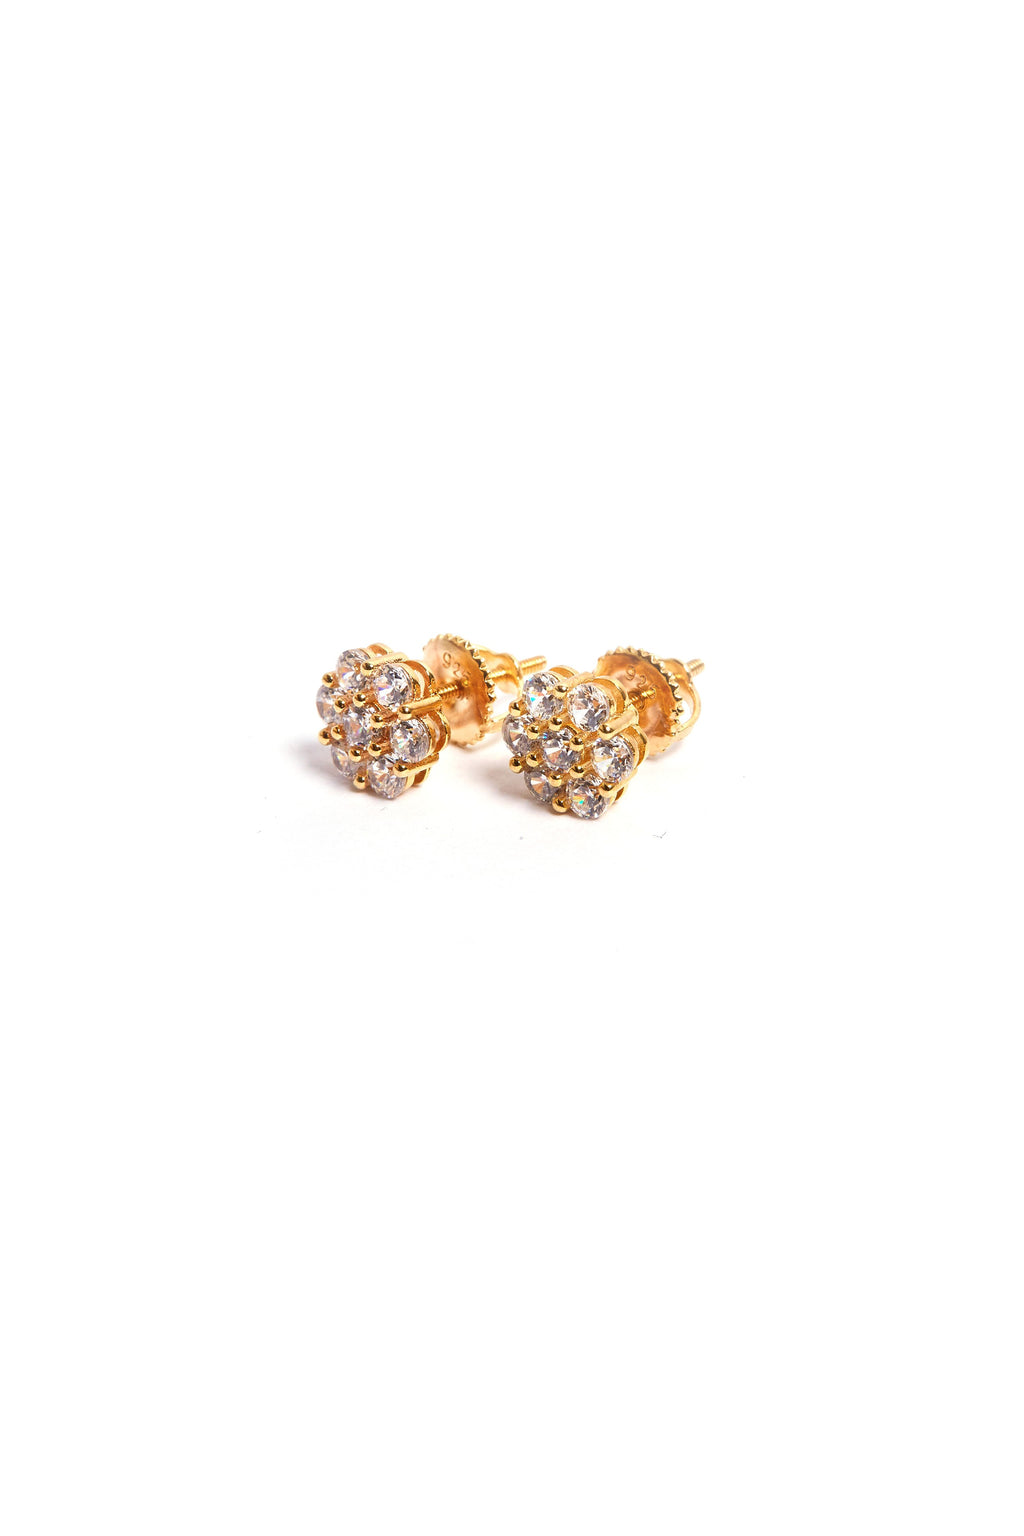 ZANE GOLD EARRINGS